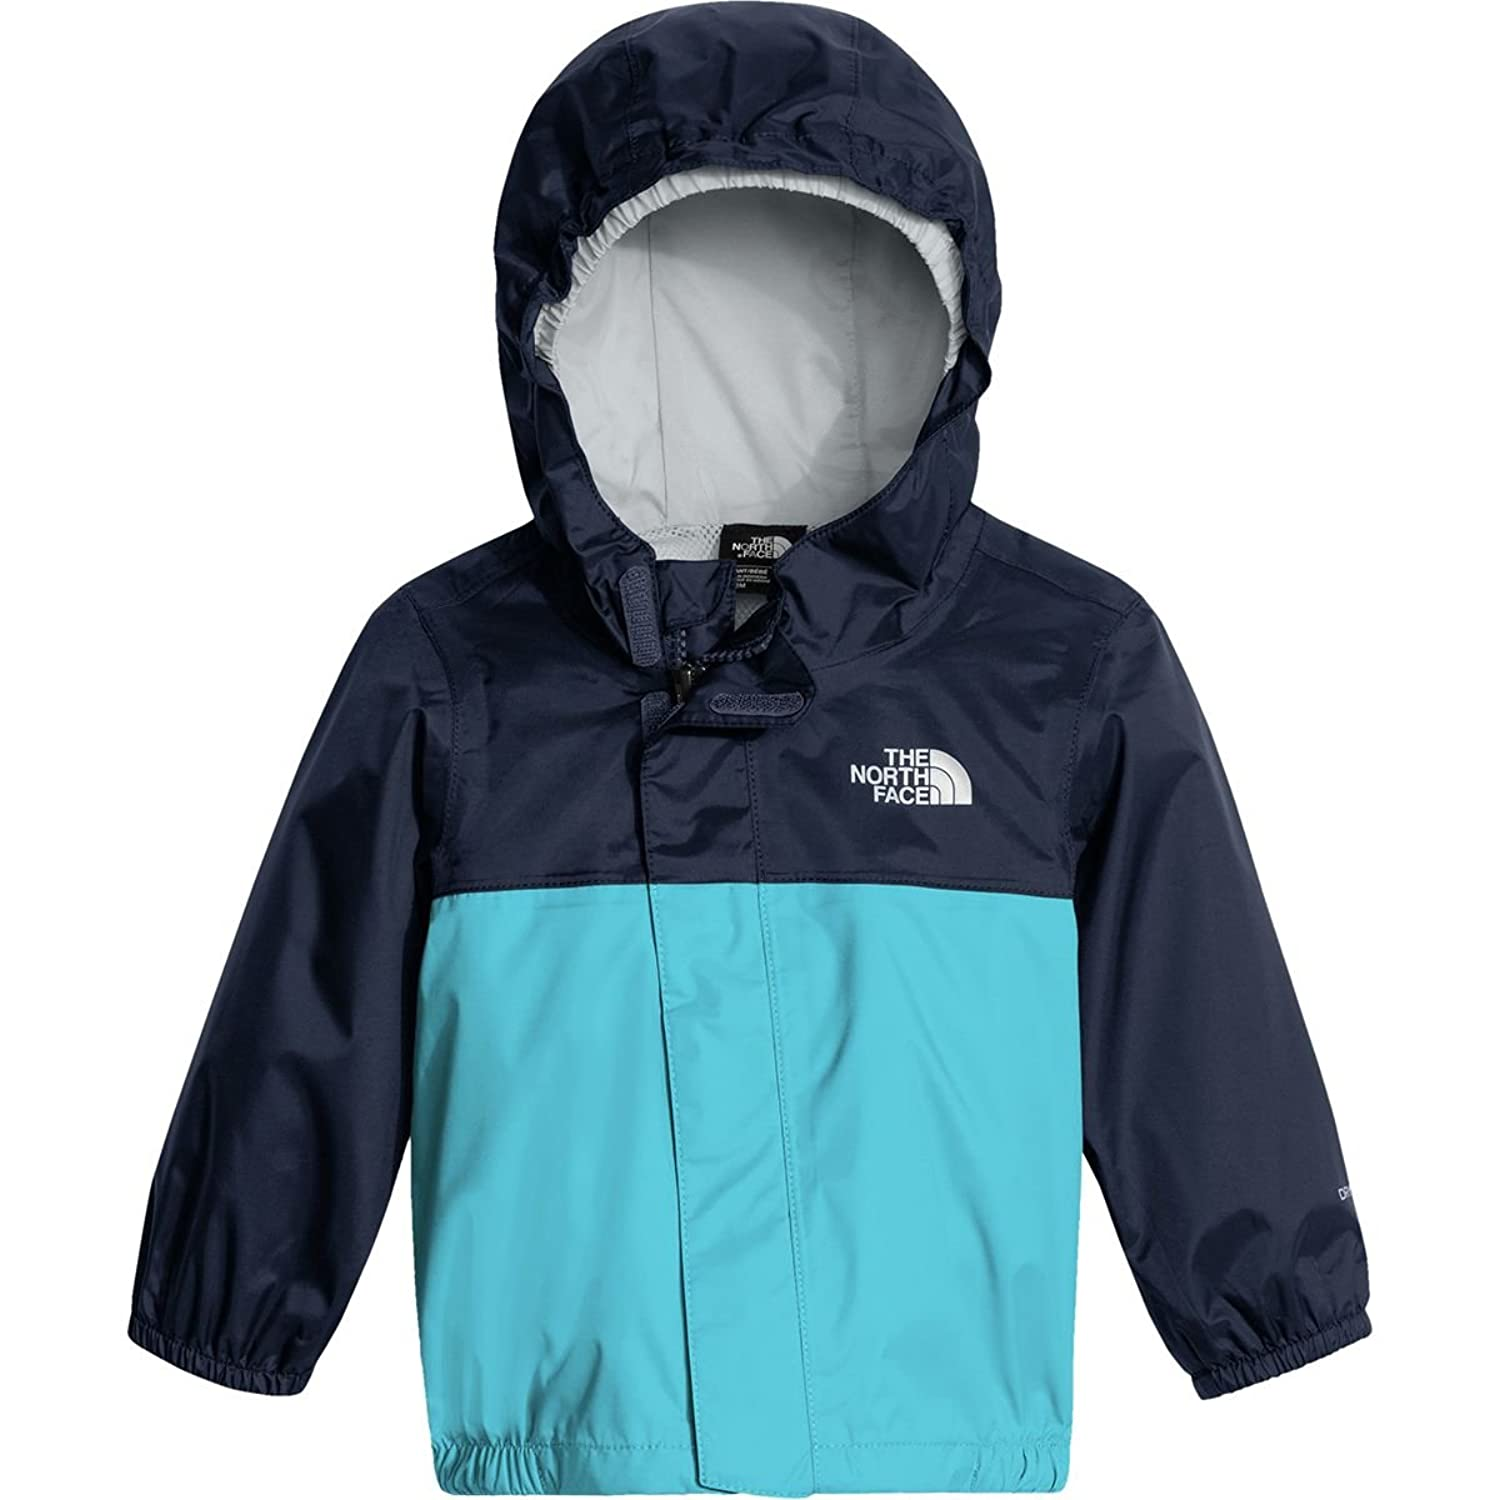 The North Face Infant Tailout Rain Jacket by The North Face